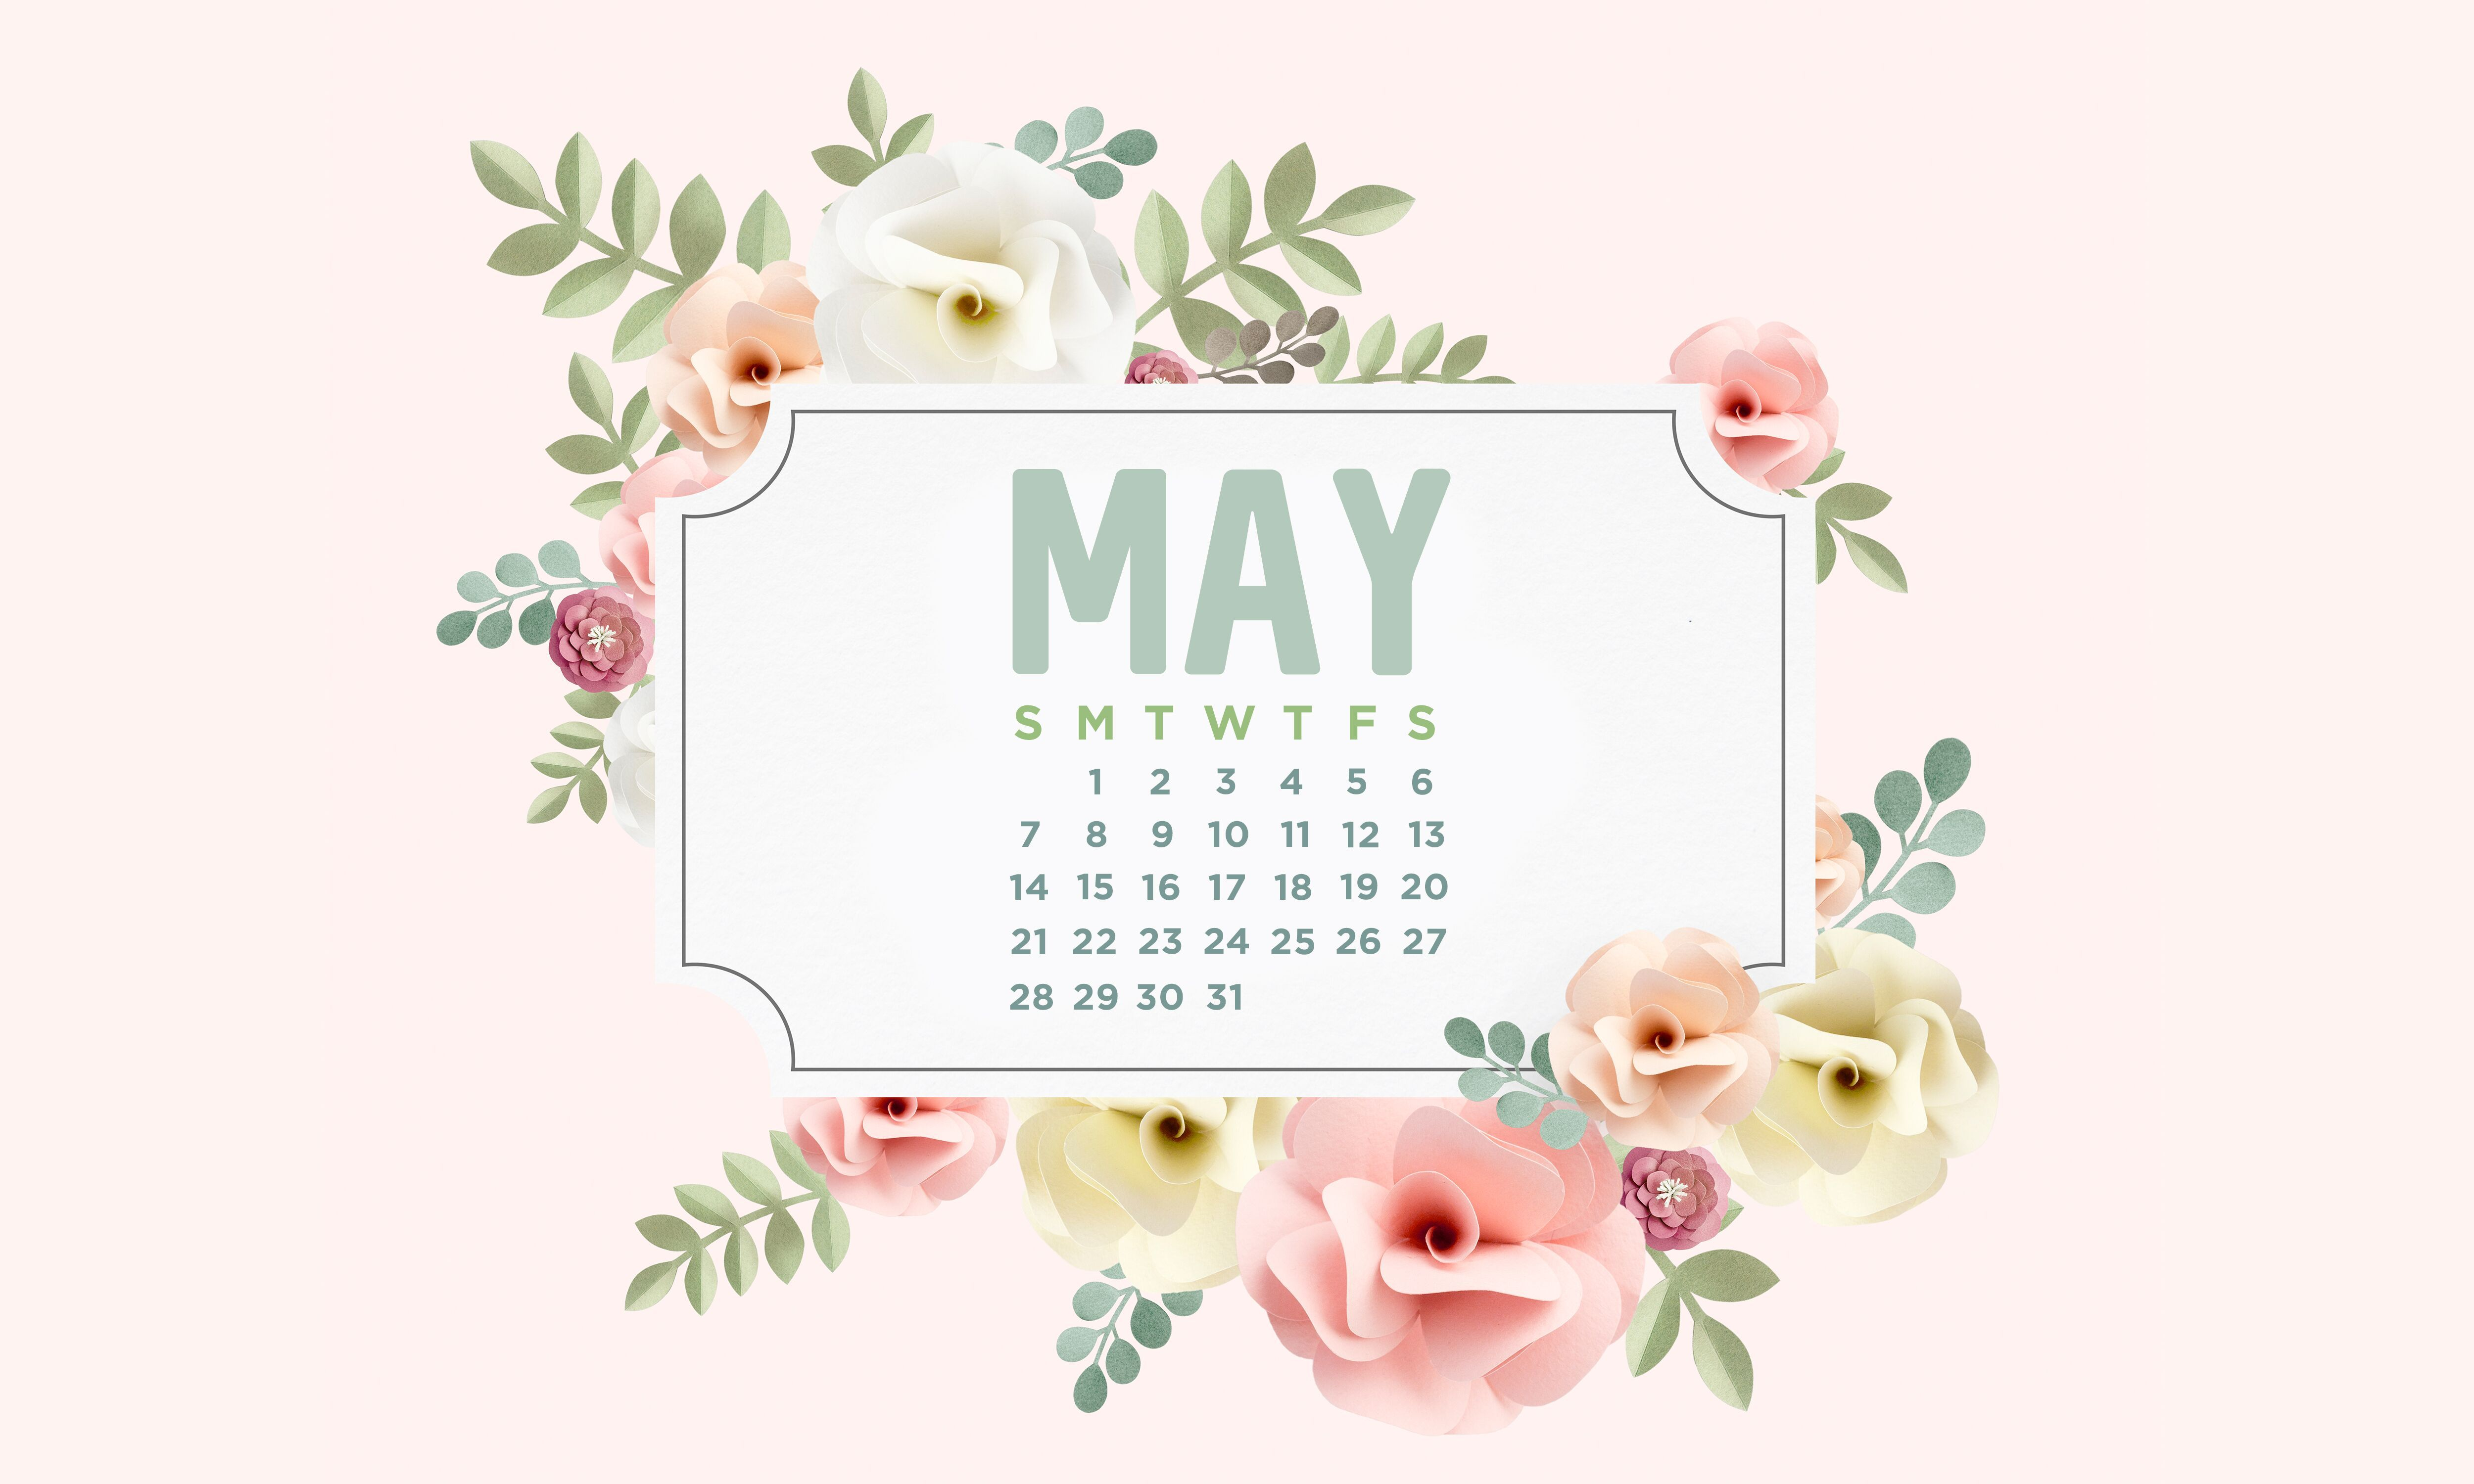 Calendar Wallpaper May : Printable may calendar wallpaper maxcalendars